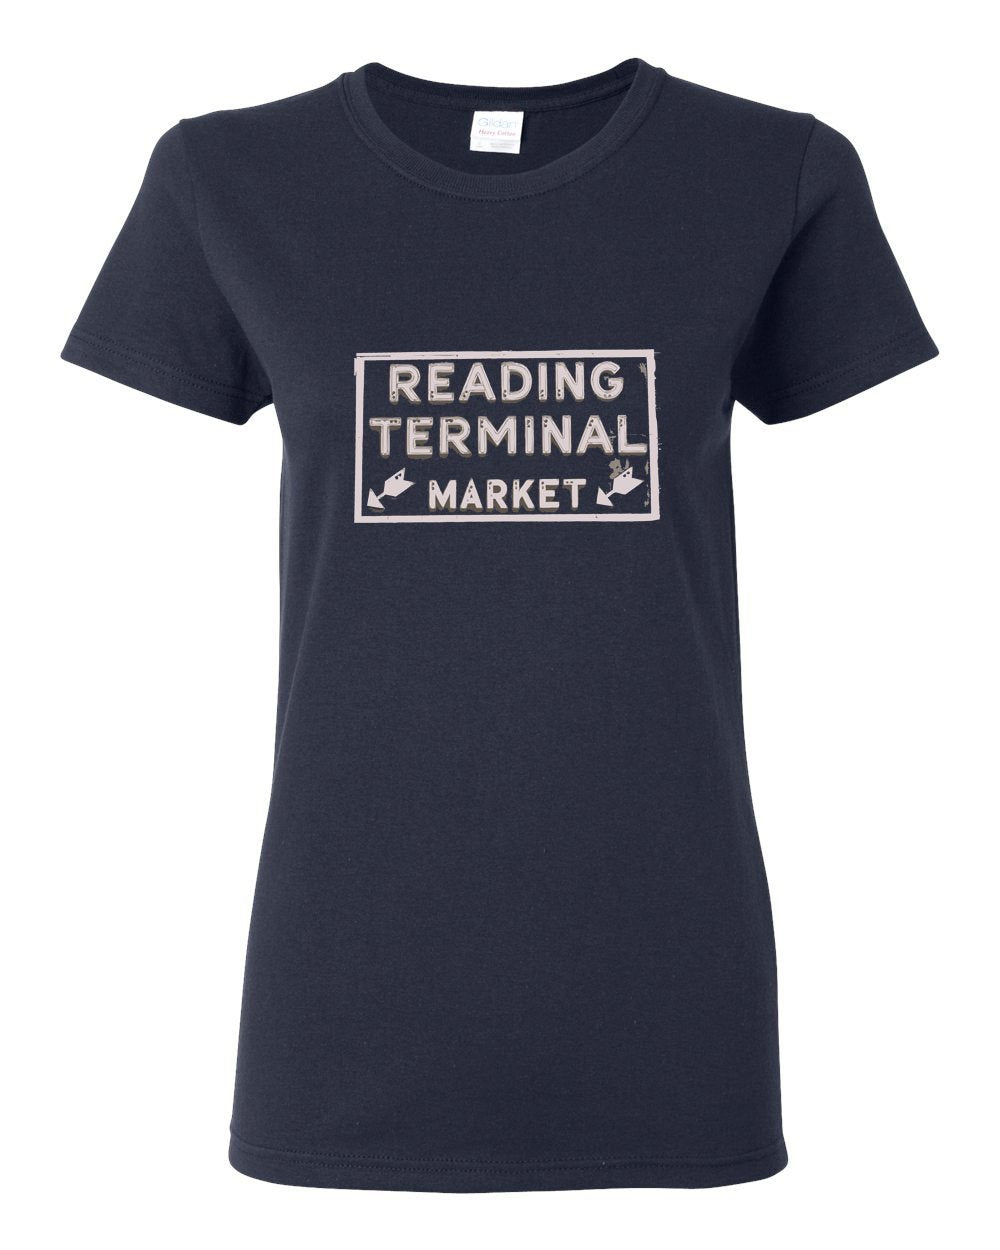 Reading Market LADIES Missy-Fit T-Shirt